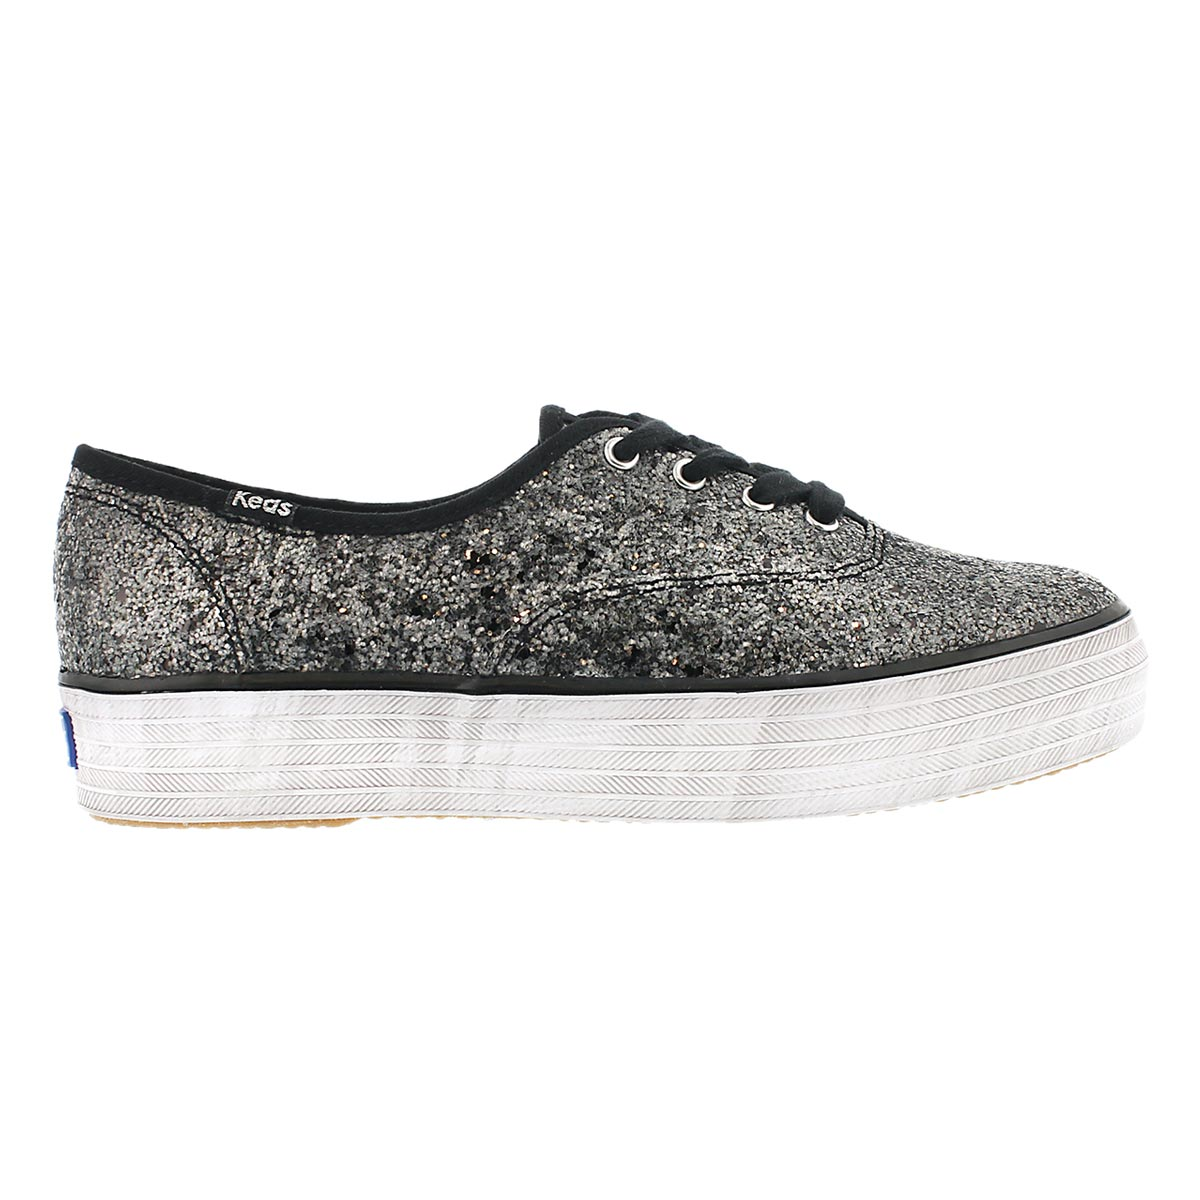 Lds Triple Glitter black fashion sneaker